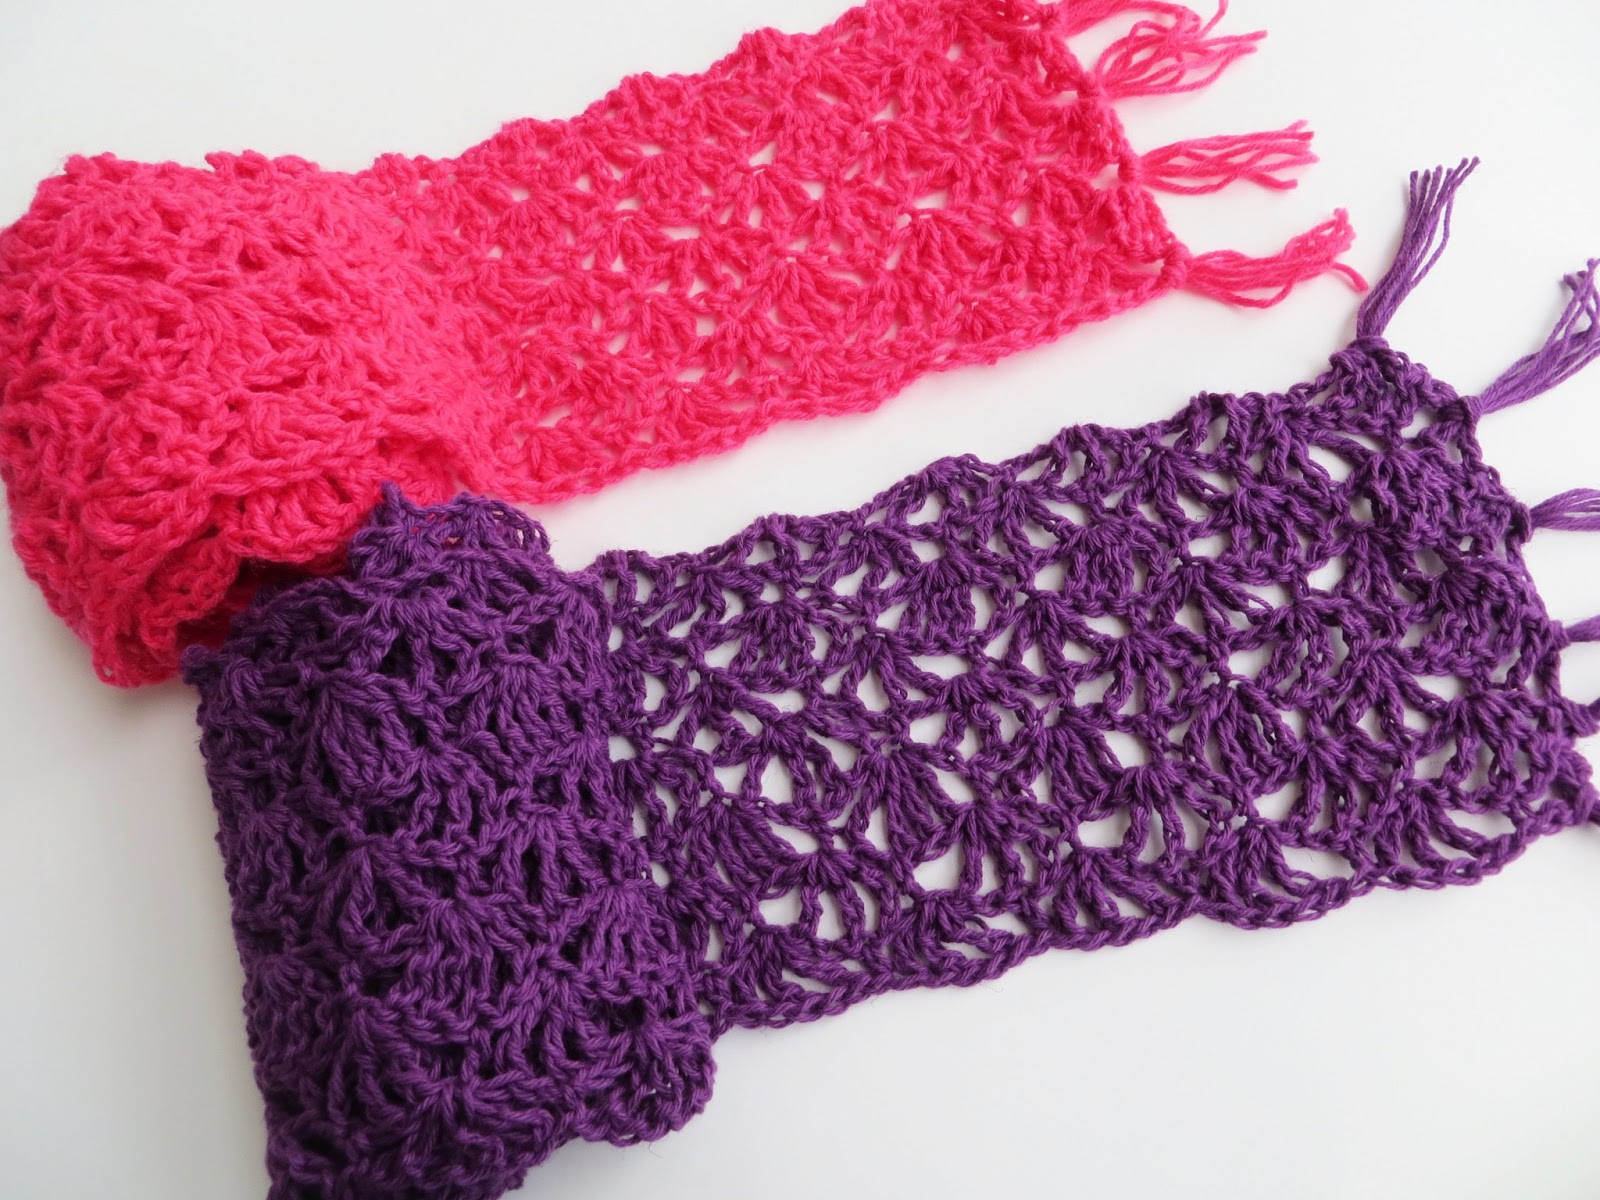 Crocheting Instructions : Crochet Dreamz: Alana Lacy Scarf, Free Crochet Pattern